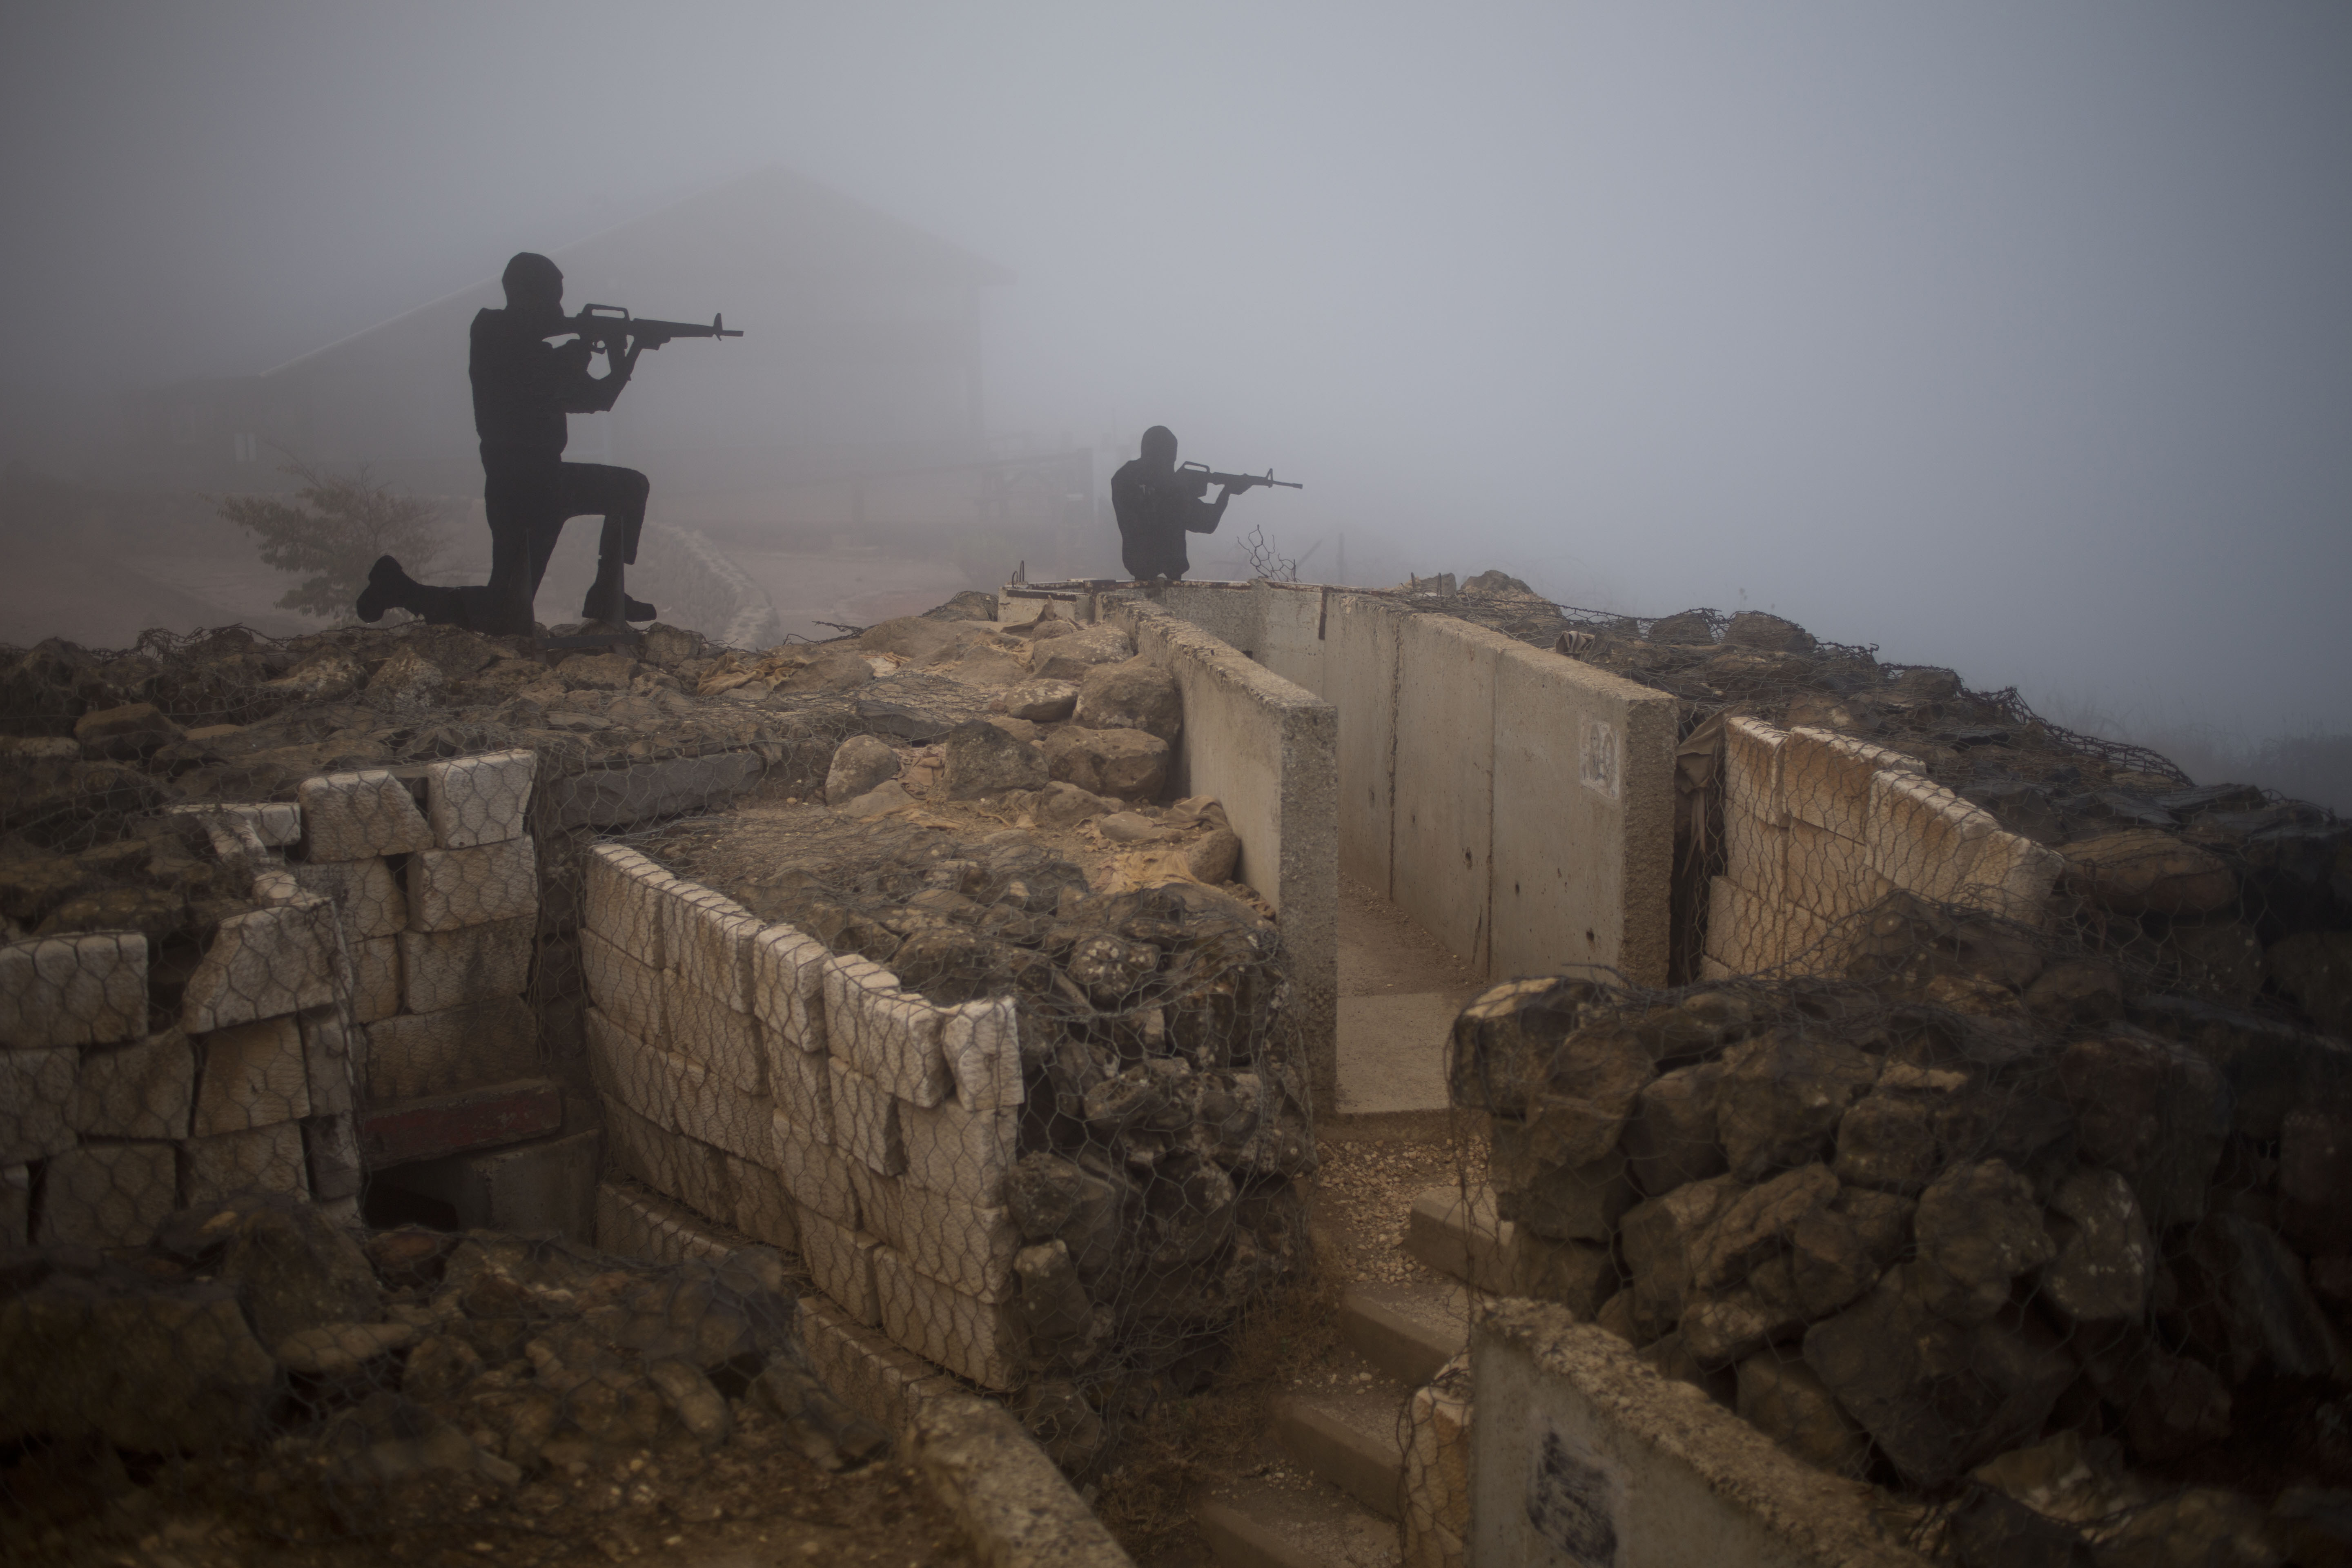 washingtonpost.com - Editorial Board - Trump's Golan Heights reversal will damage U.S. diplomacy in the Middle East and beyond